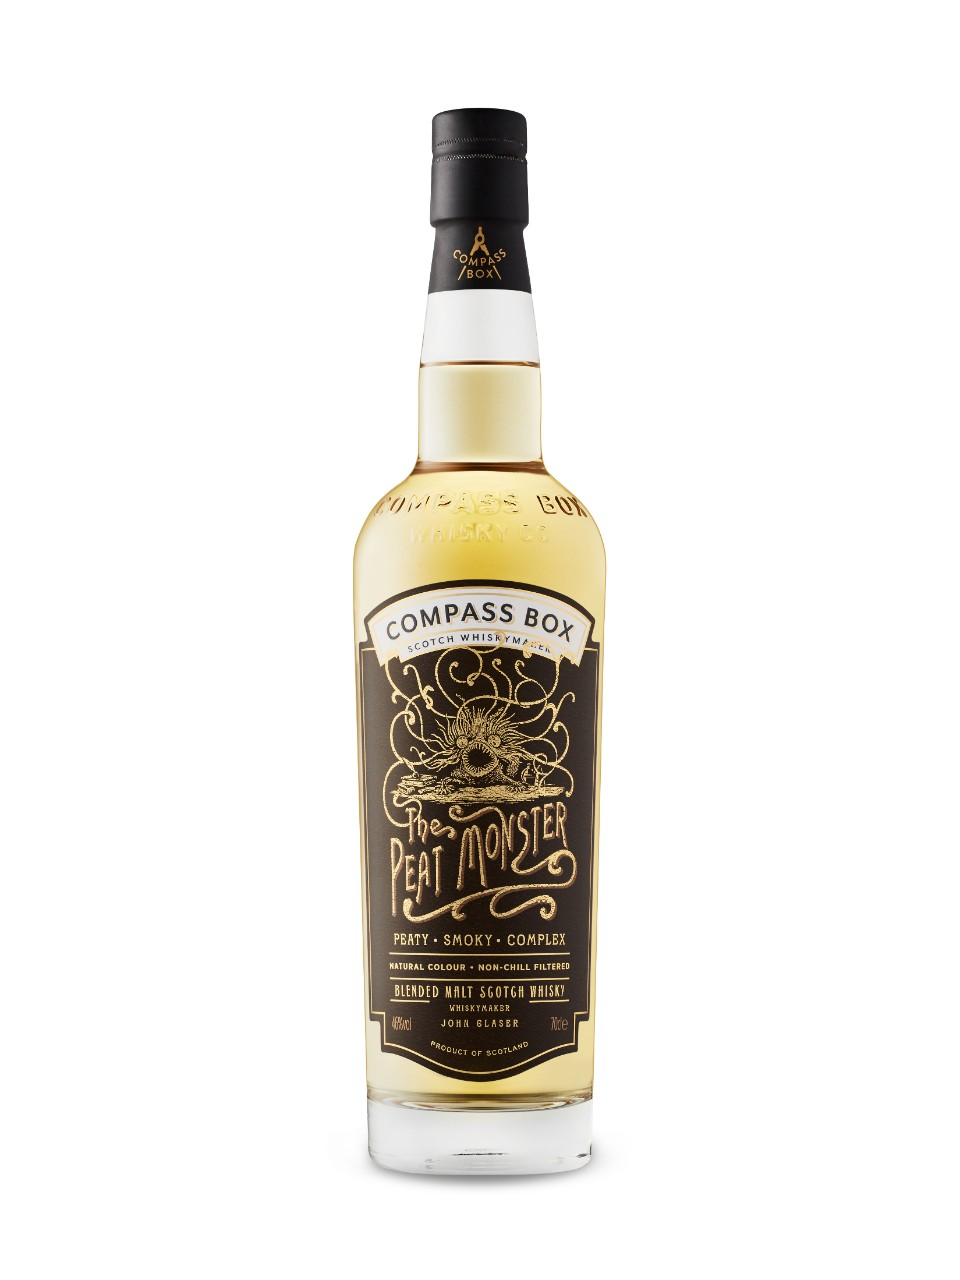 Image for Compass Box The Peat Monster Vatted Malt Scotch Whisky from LCBO